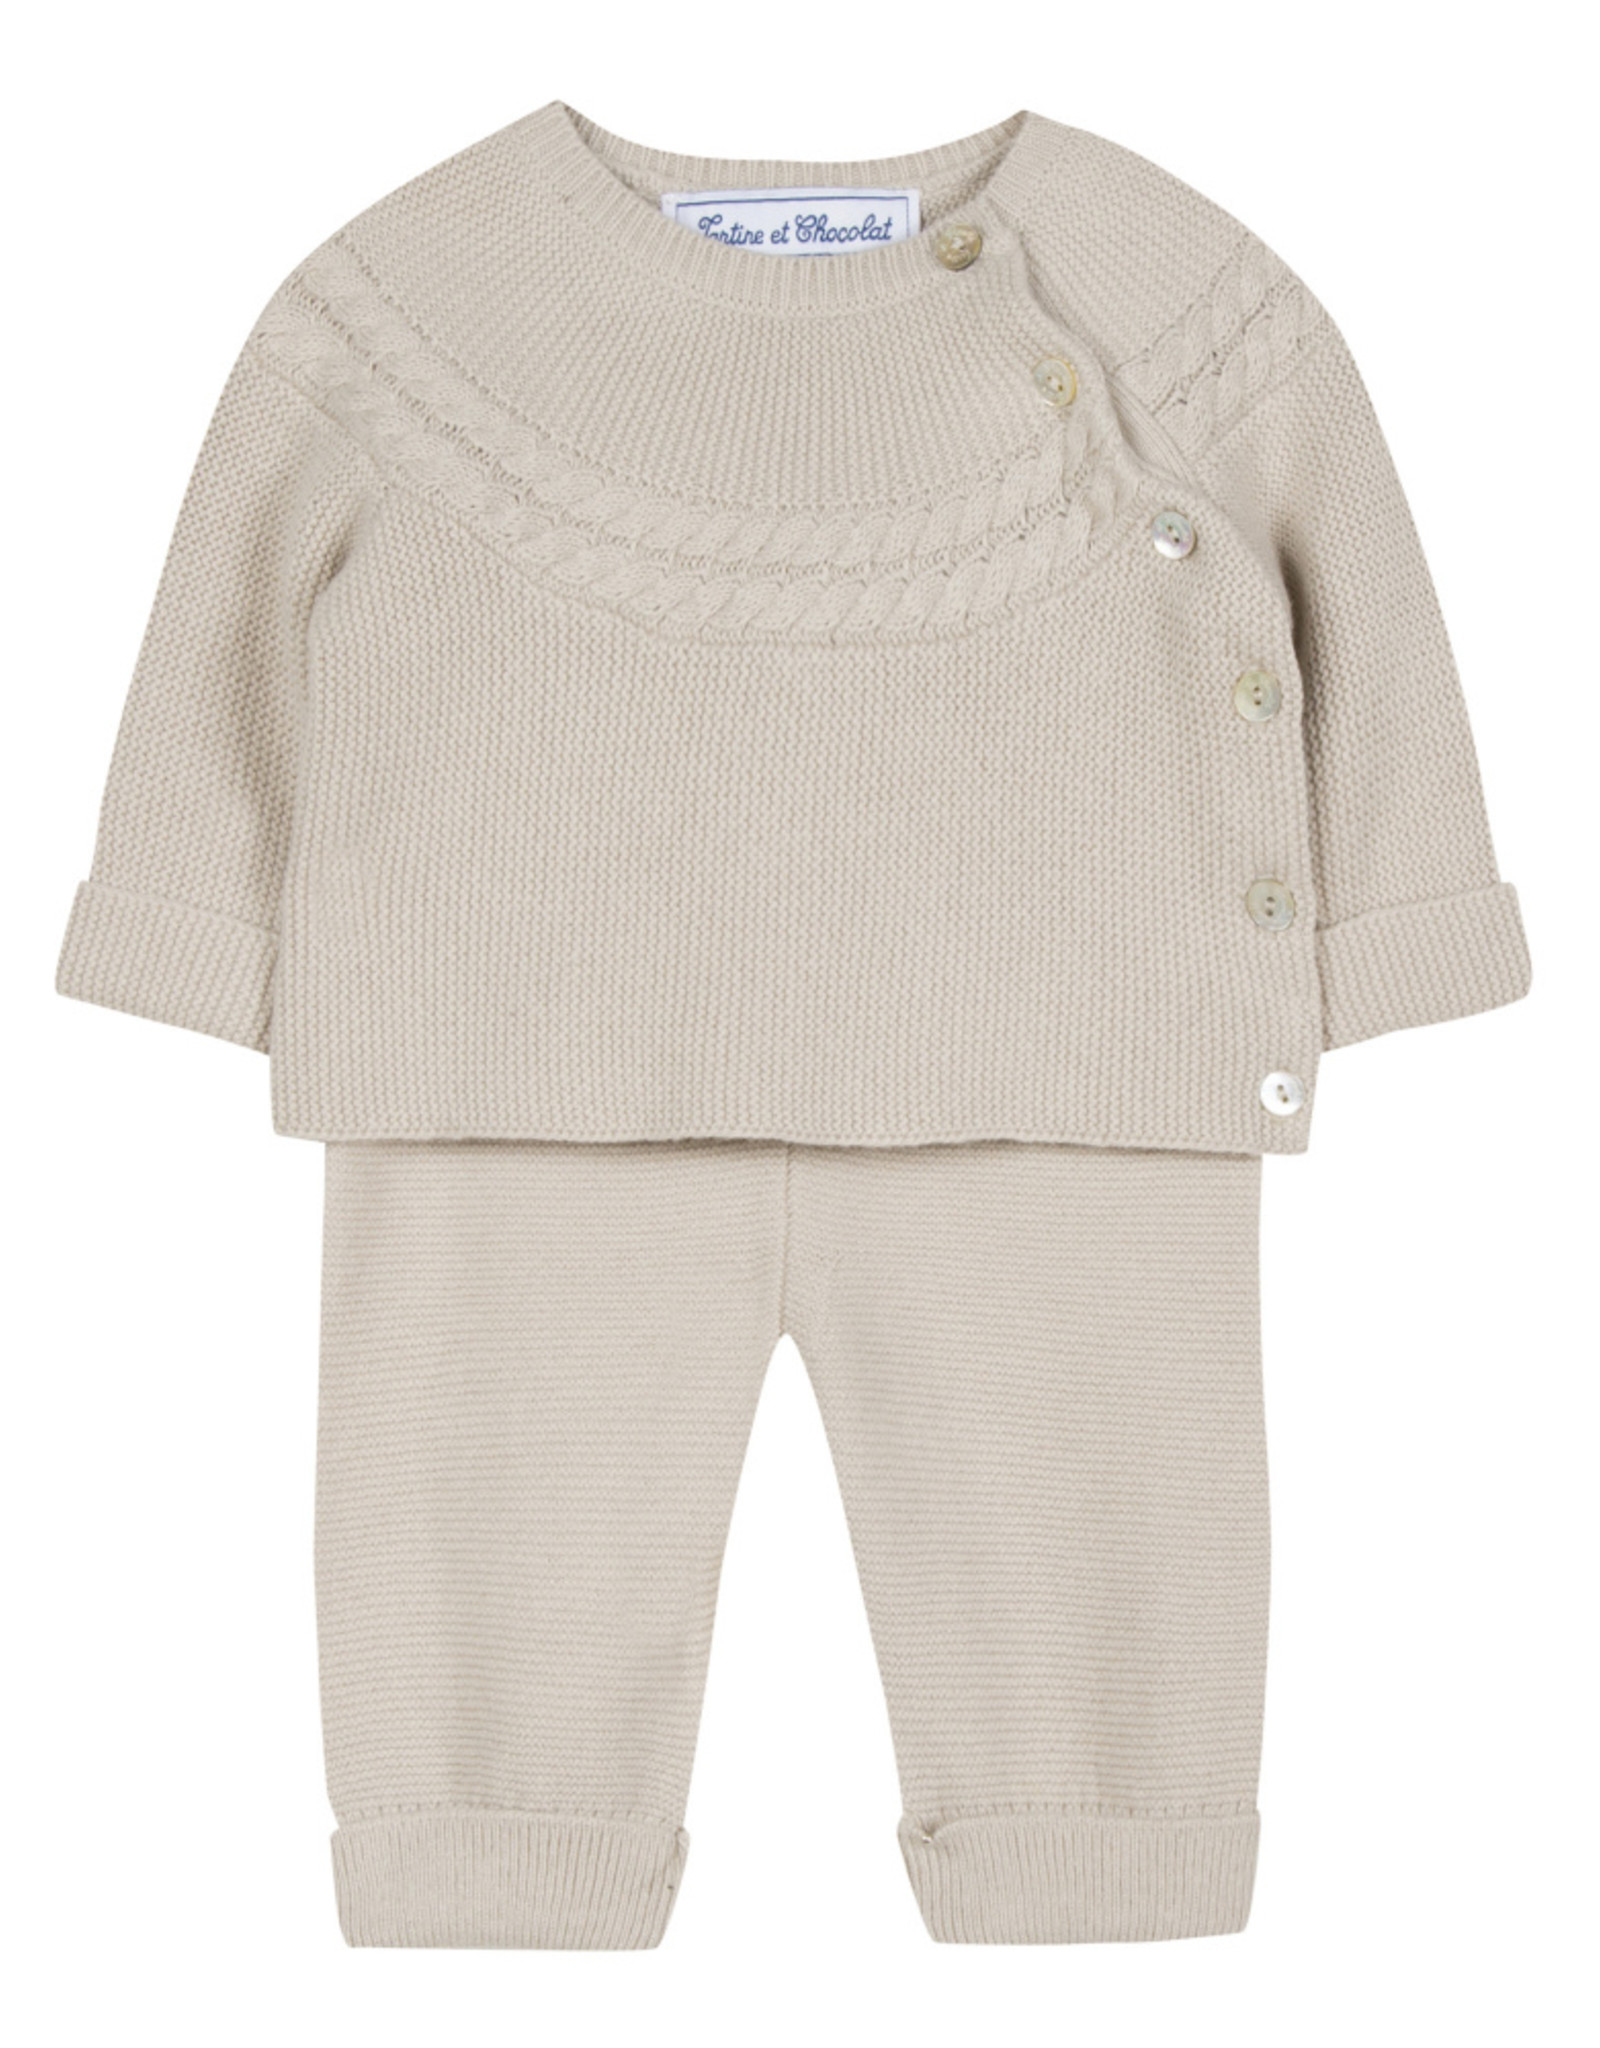 Beautifully Sweet baby outfit